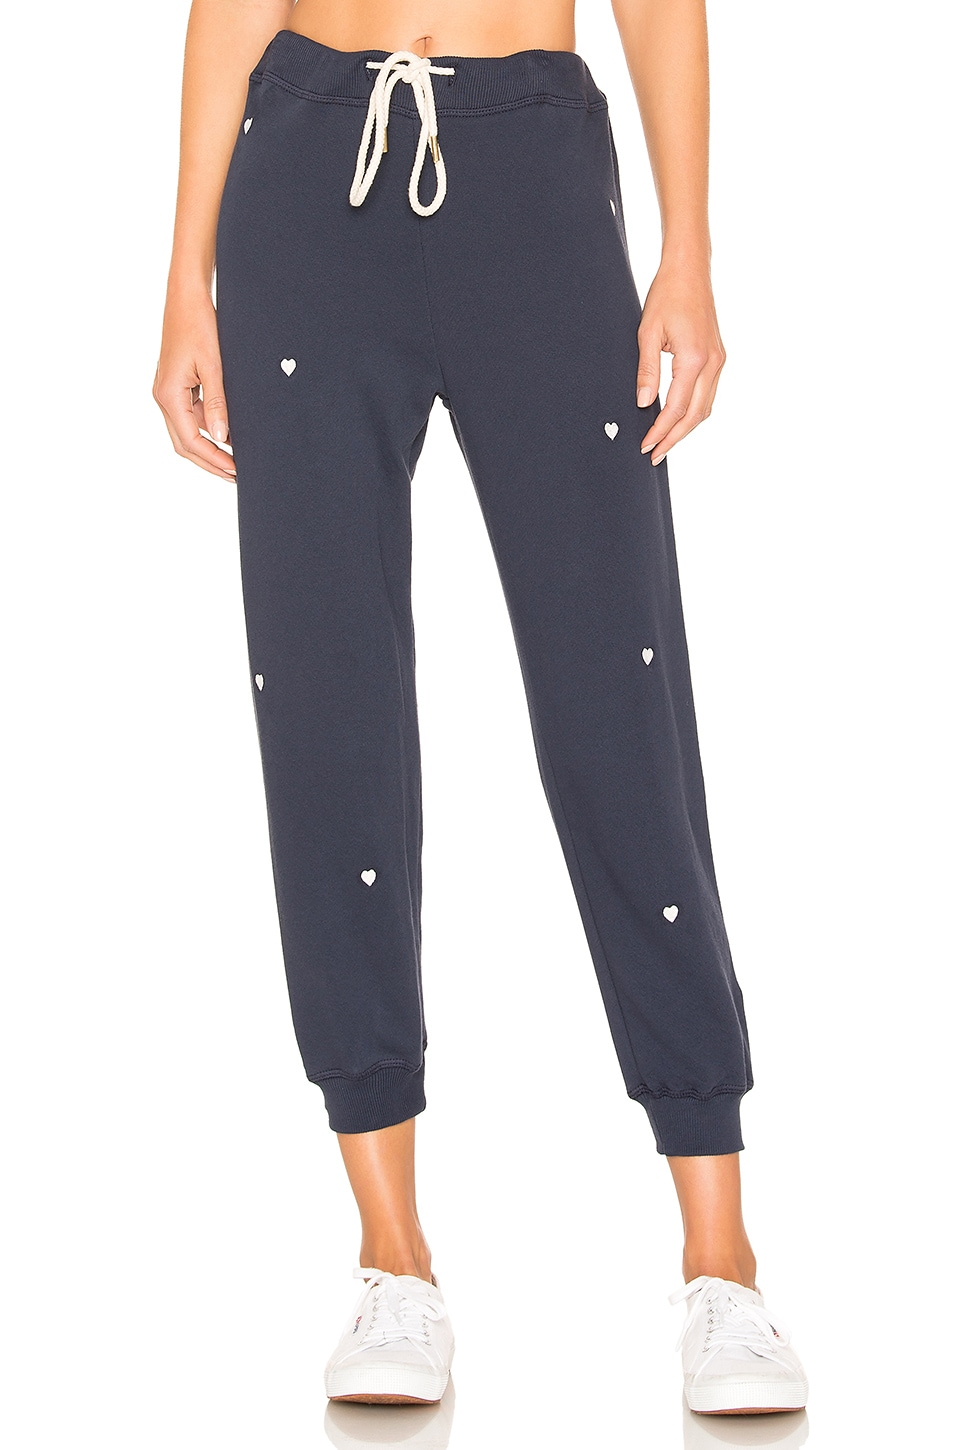 The Great The Cropped Sweatpant in Navy With Heart Embroidery